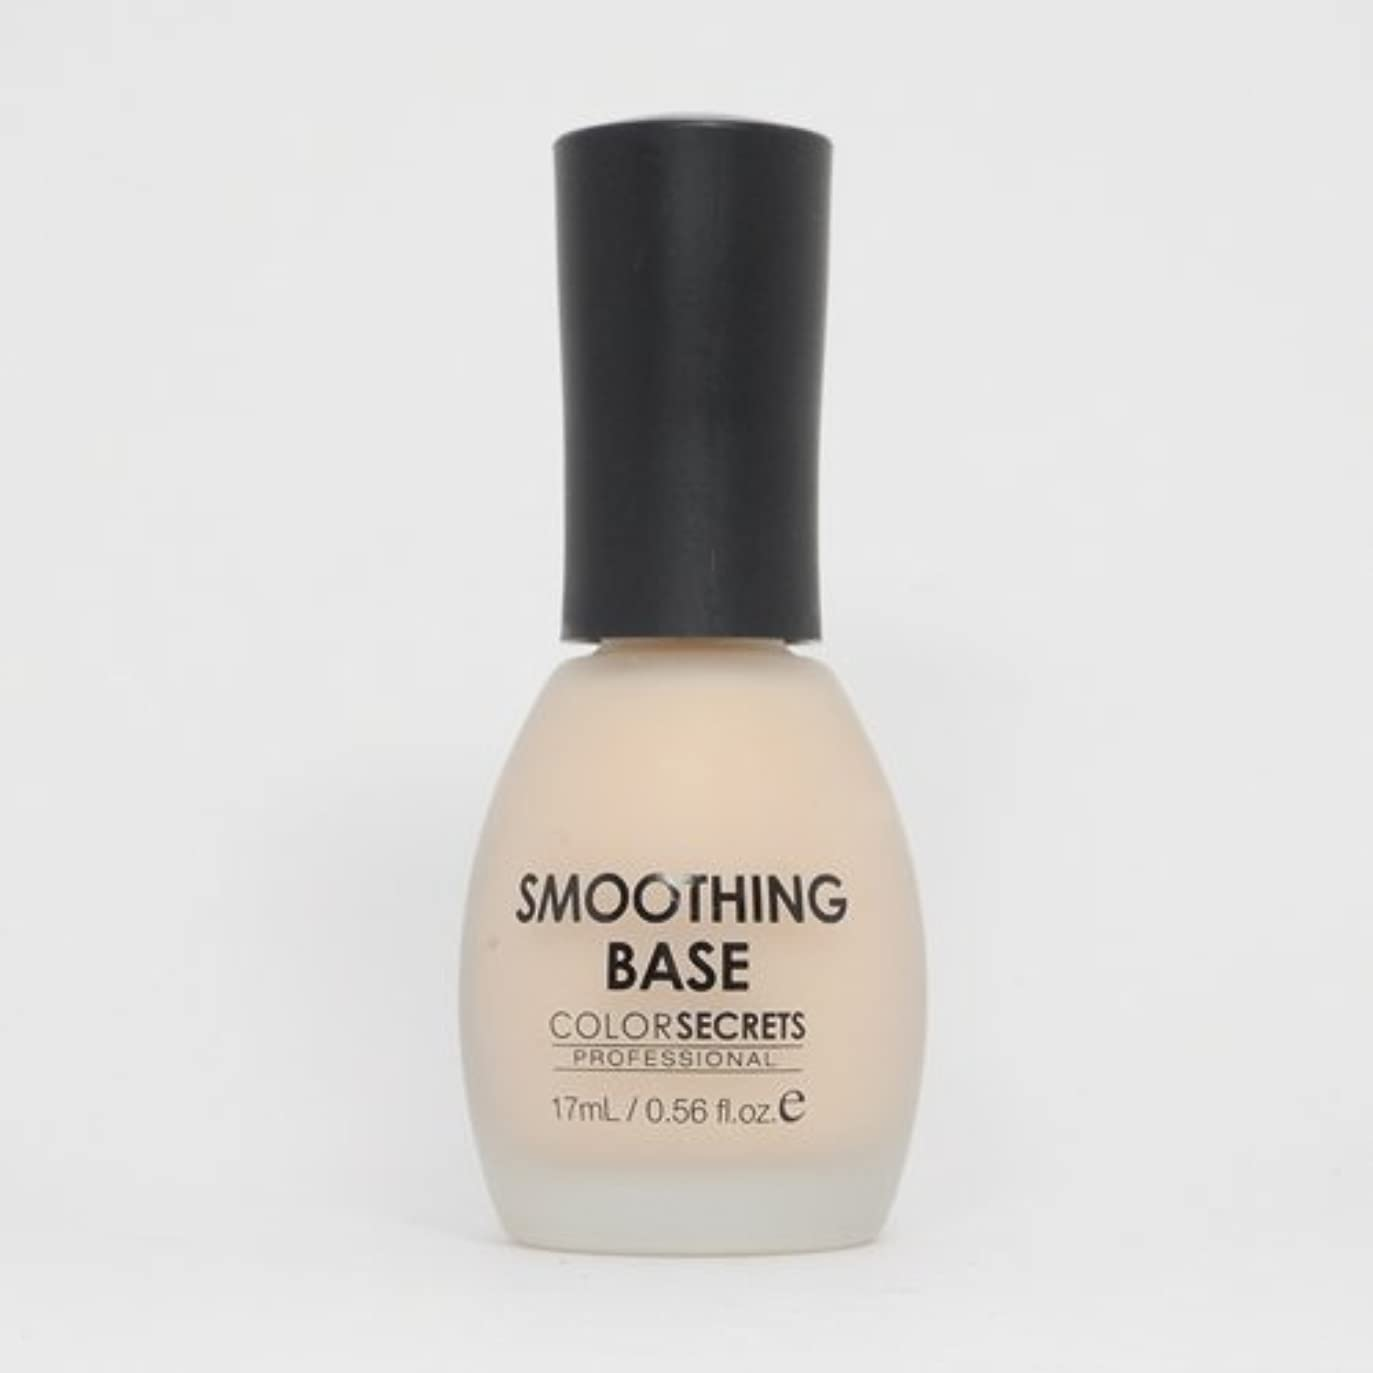 COLORSECRETS ビーガンネイルN001 SMOOTHING BASE